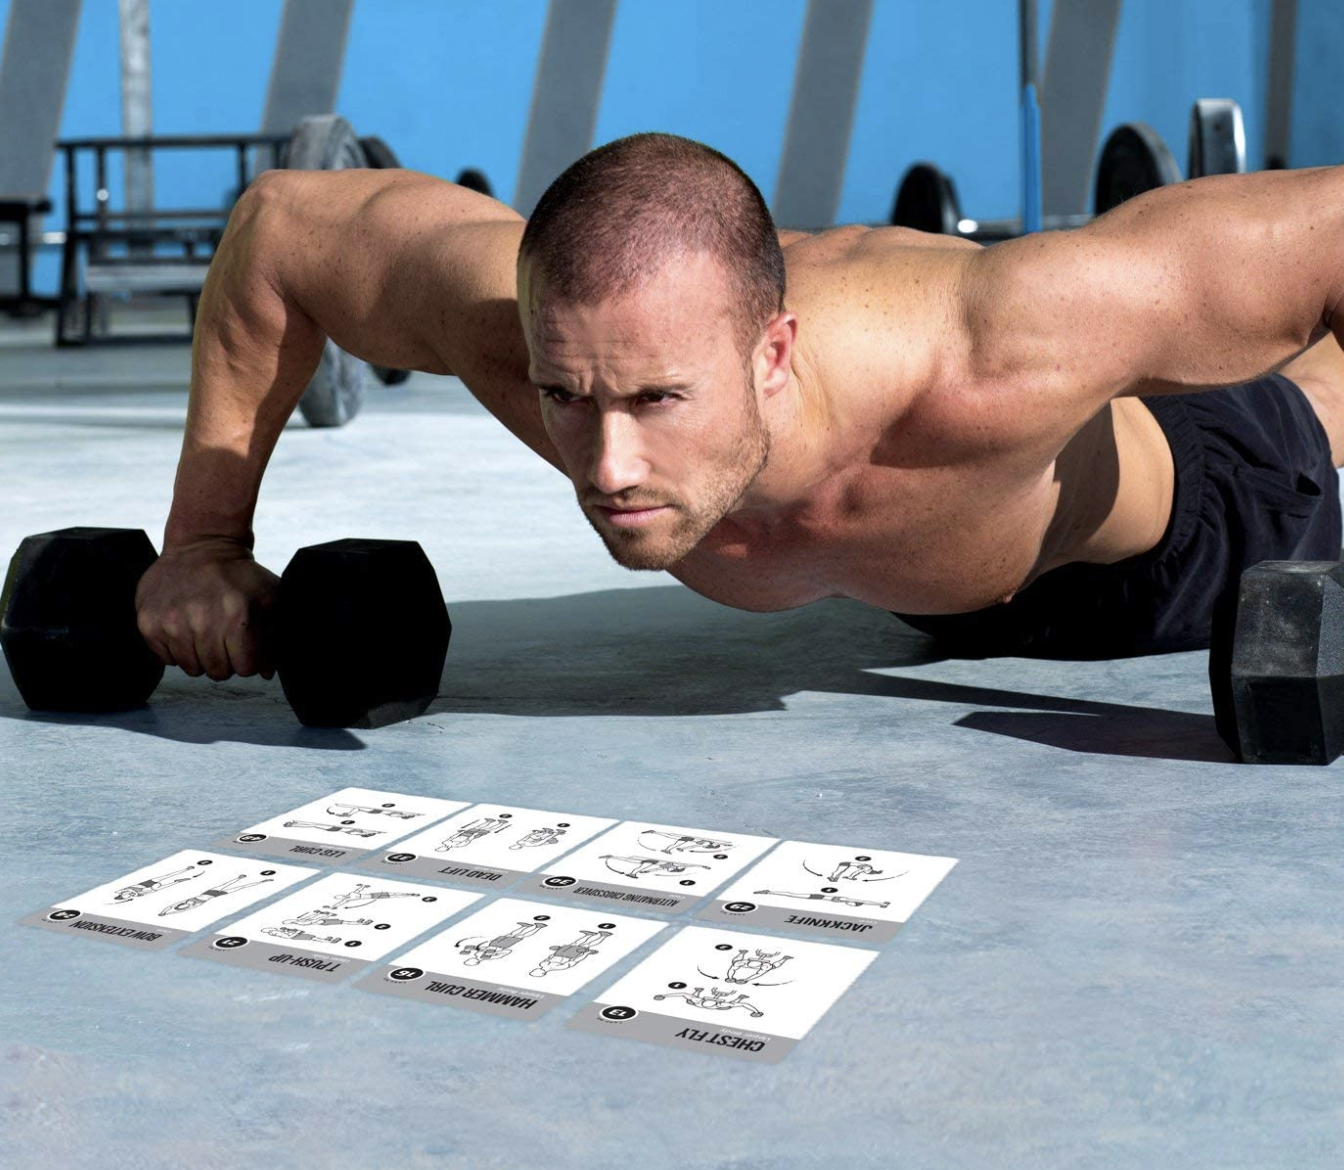 Model does a push-up with black dumbbells while reading a stack of workout cards with other exercise positions